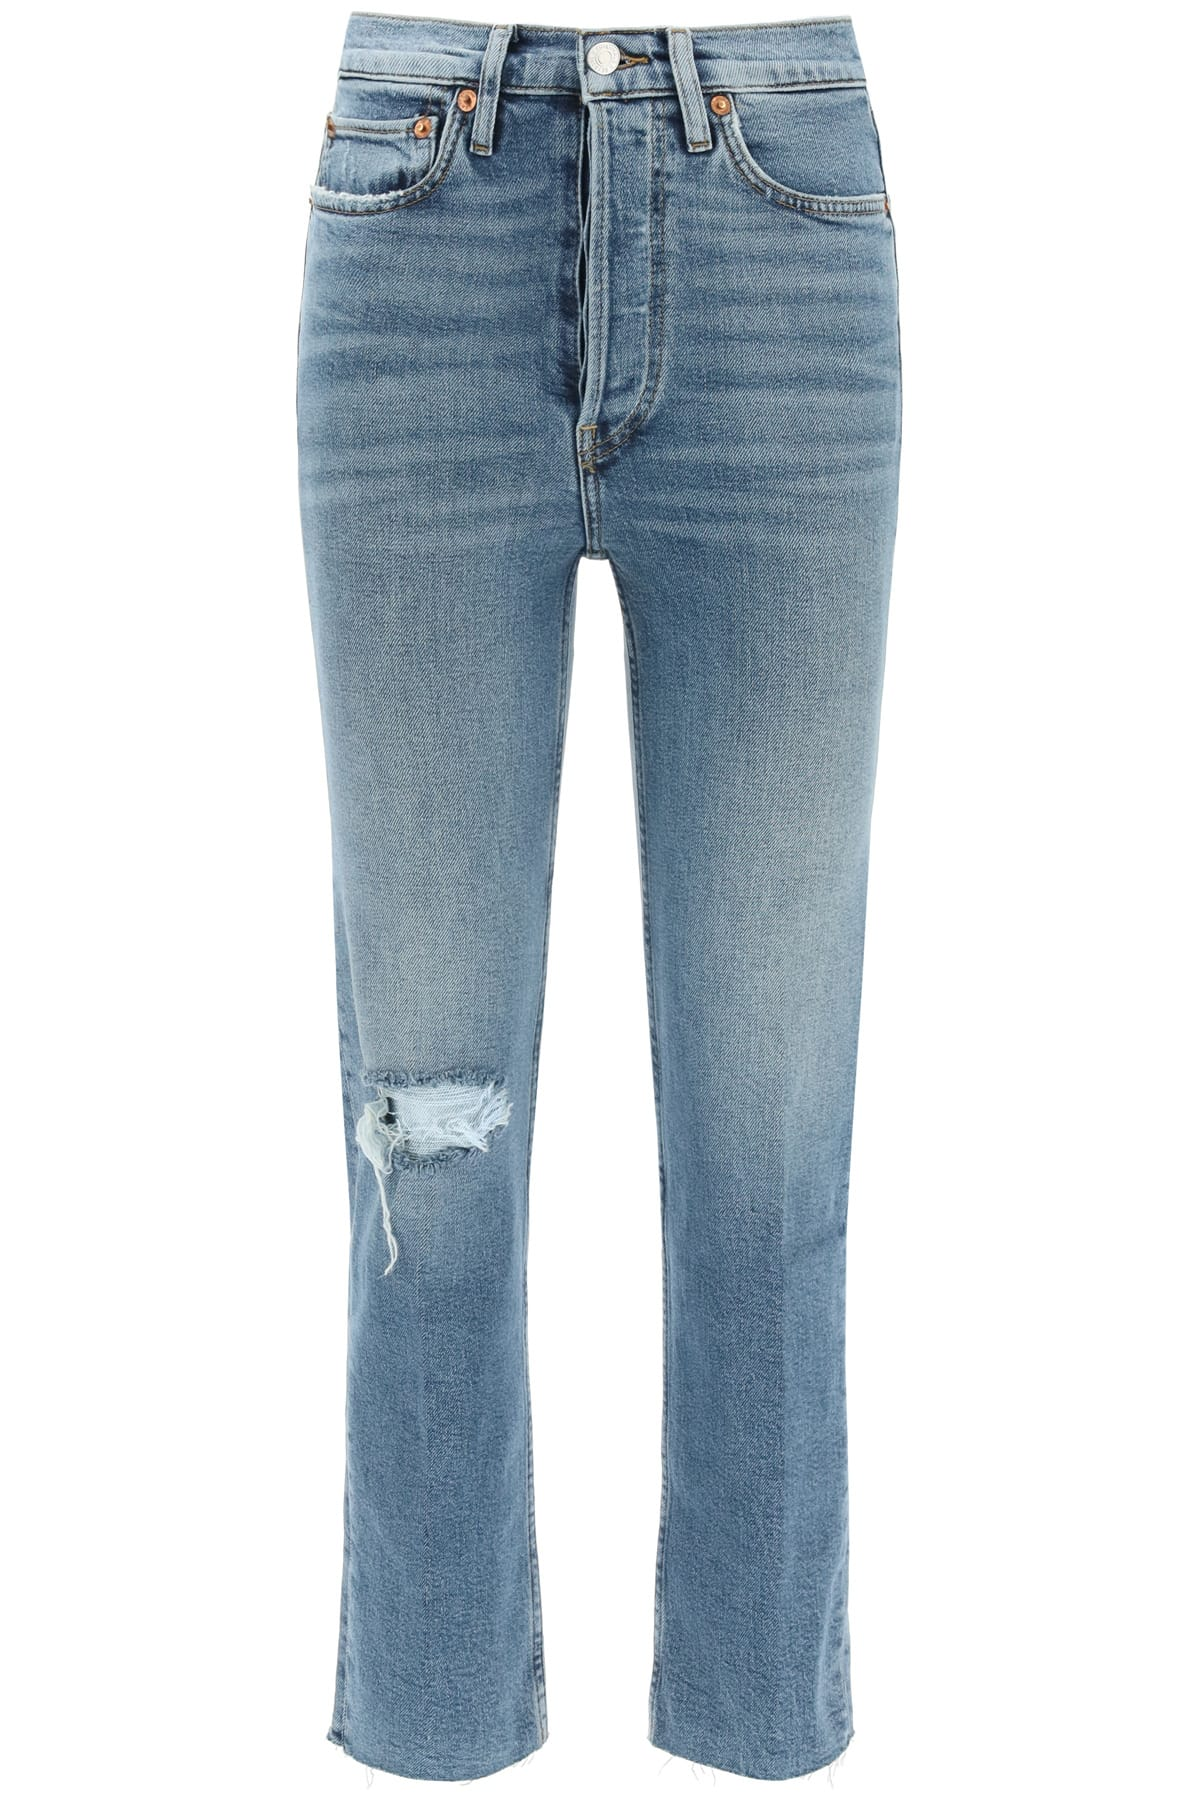 Re/done HIGH RISE STOVE PIPE JEANS WITH RIPS